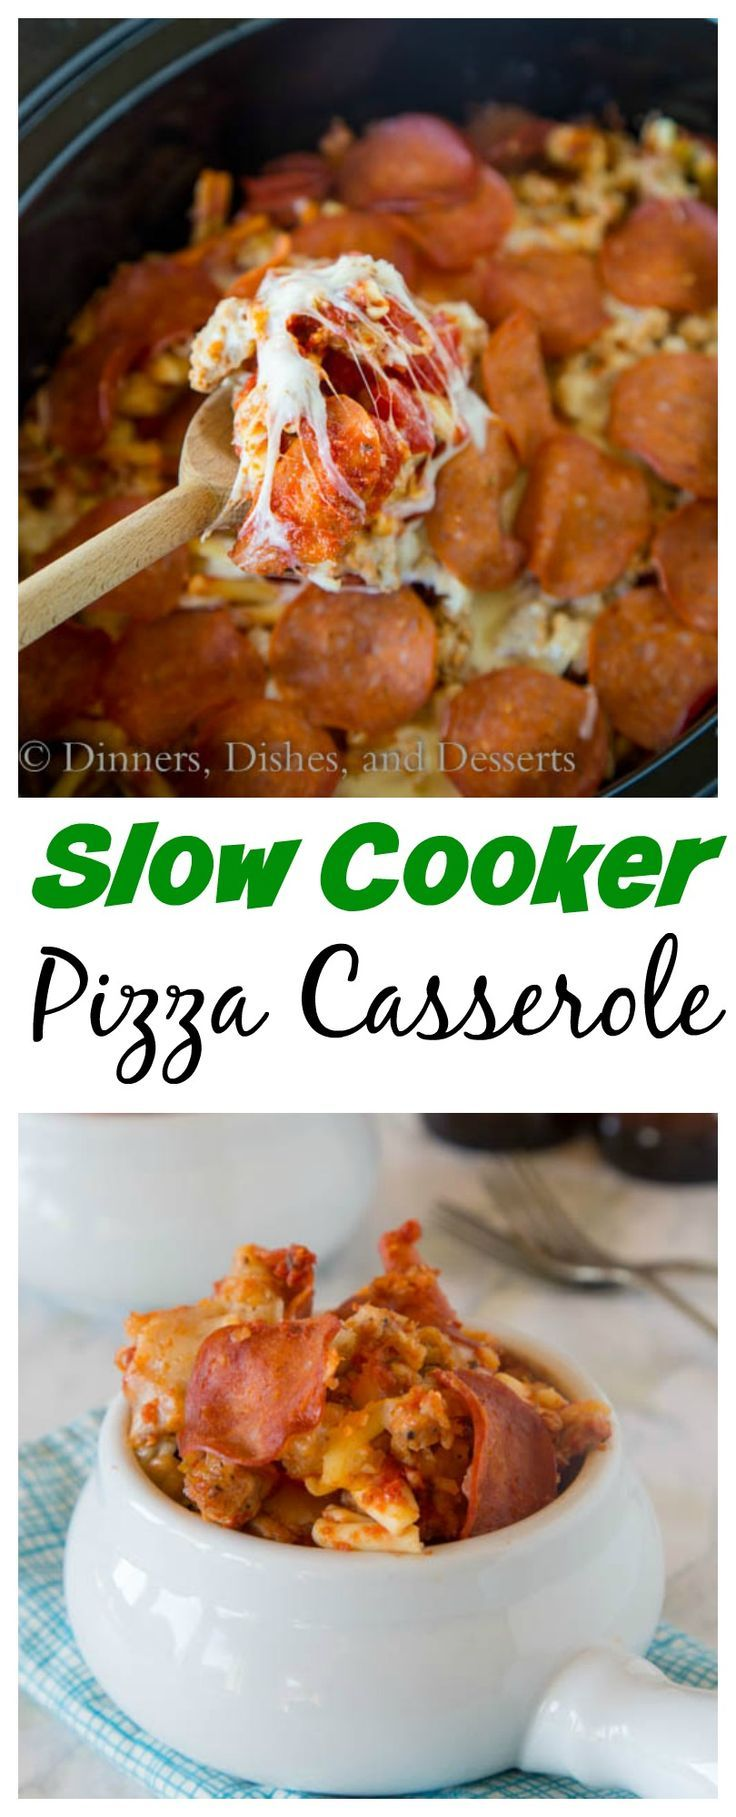 Slow Cooker Pizza Casserole – Who doesn't love pizza? Turn it into ...